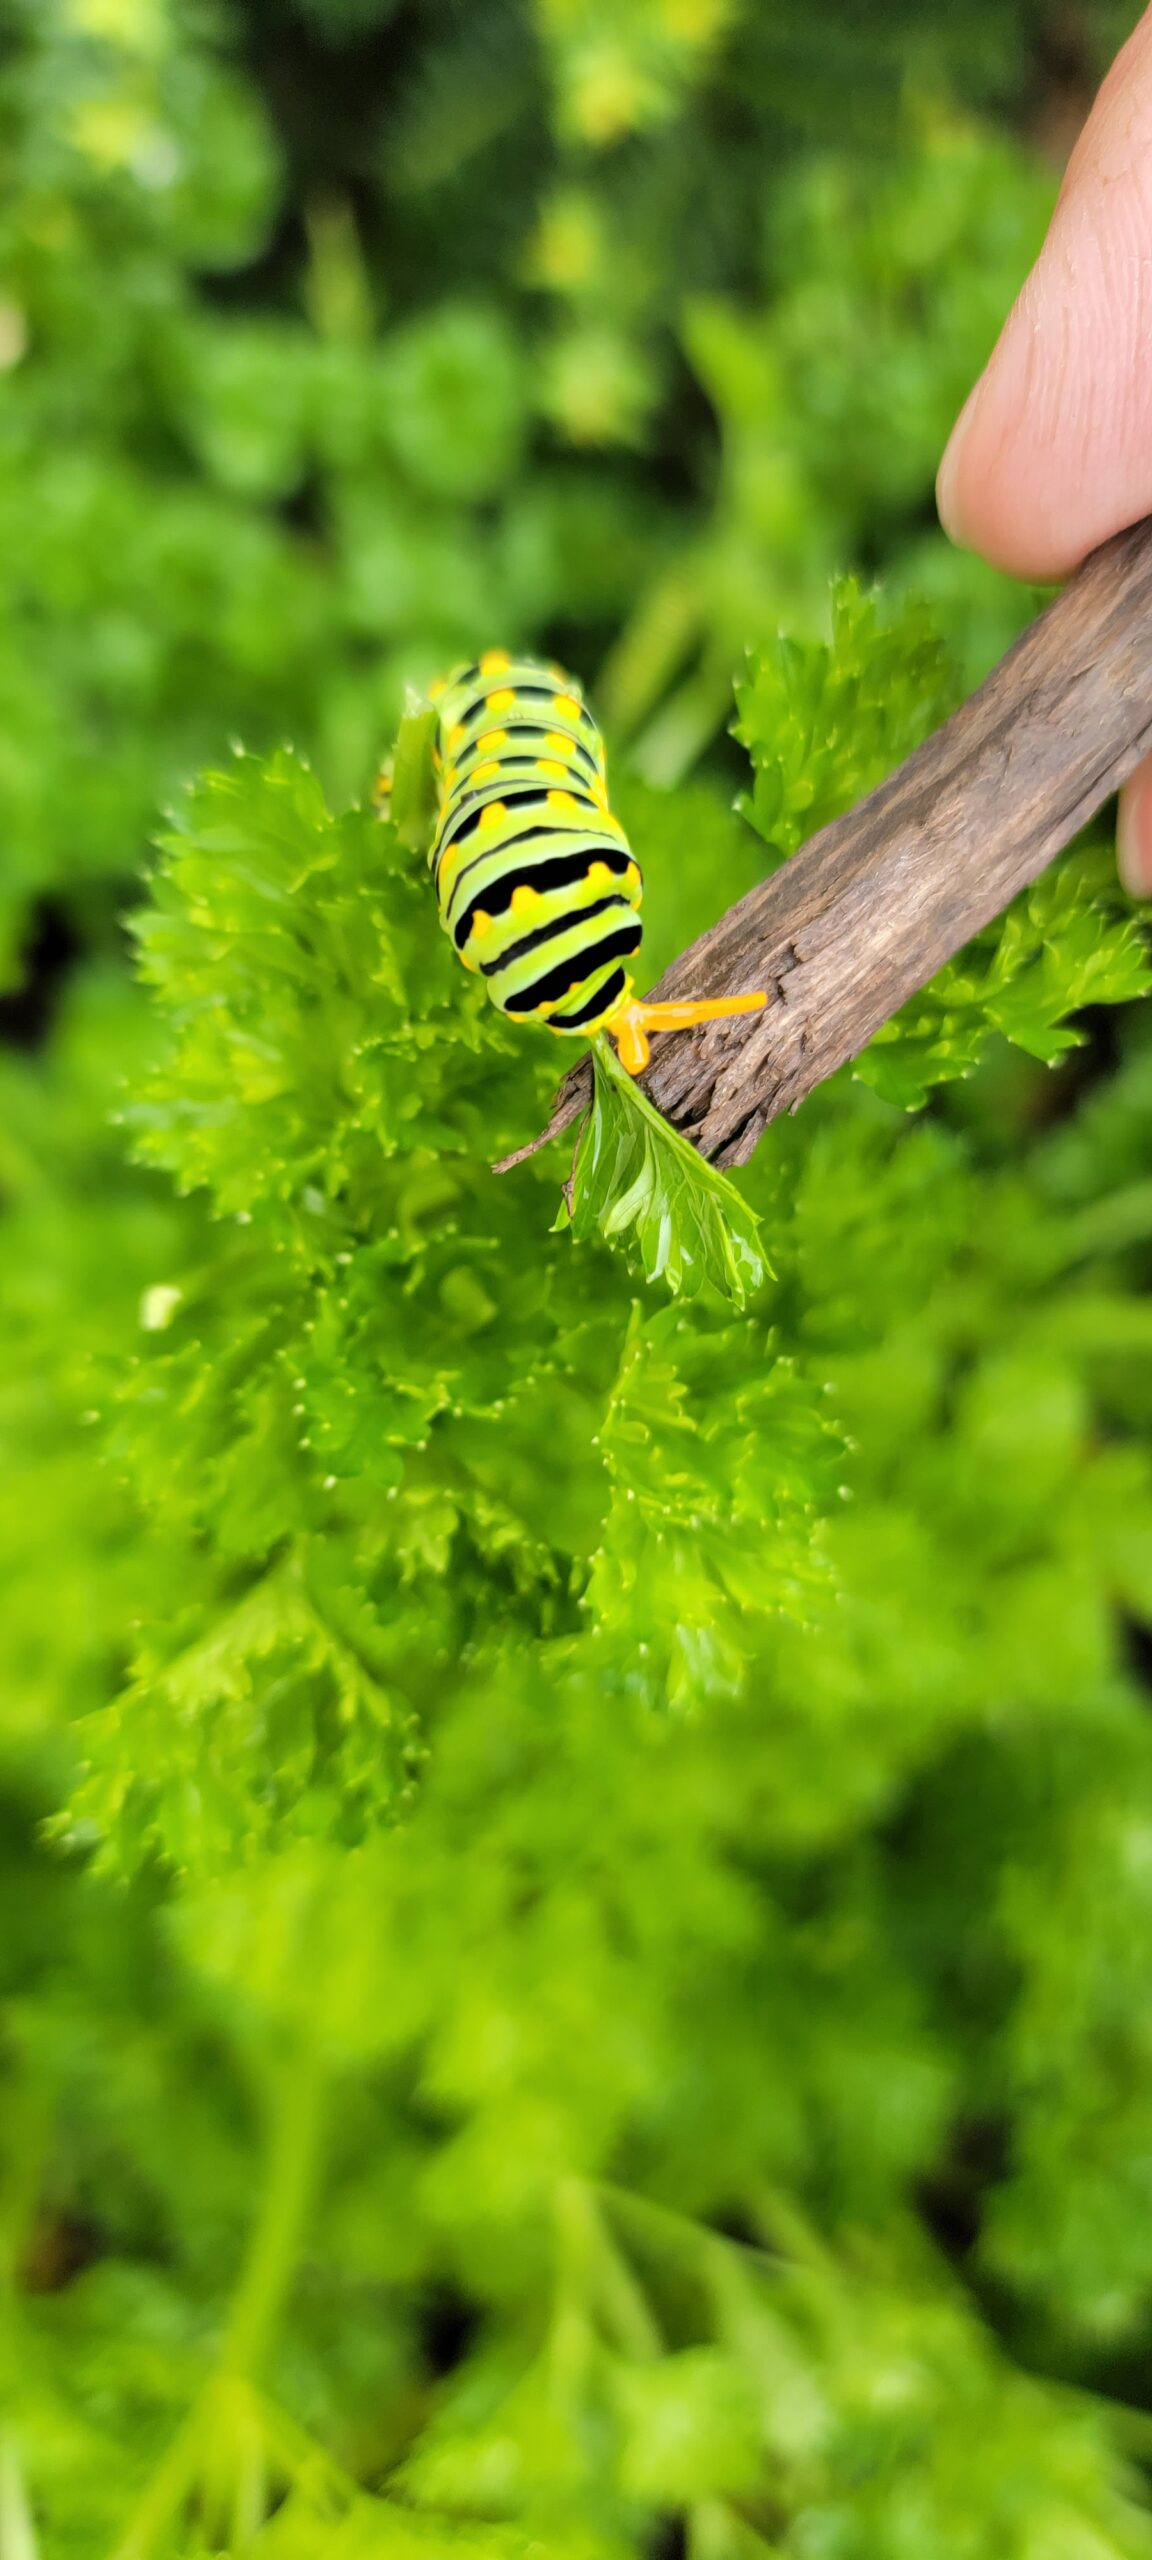 Parsley Caterpillar On The Parsley Plant